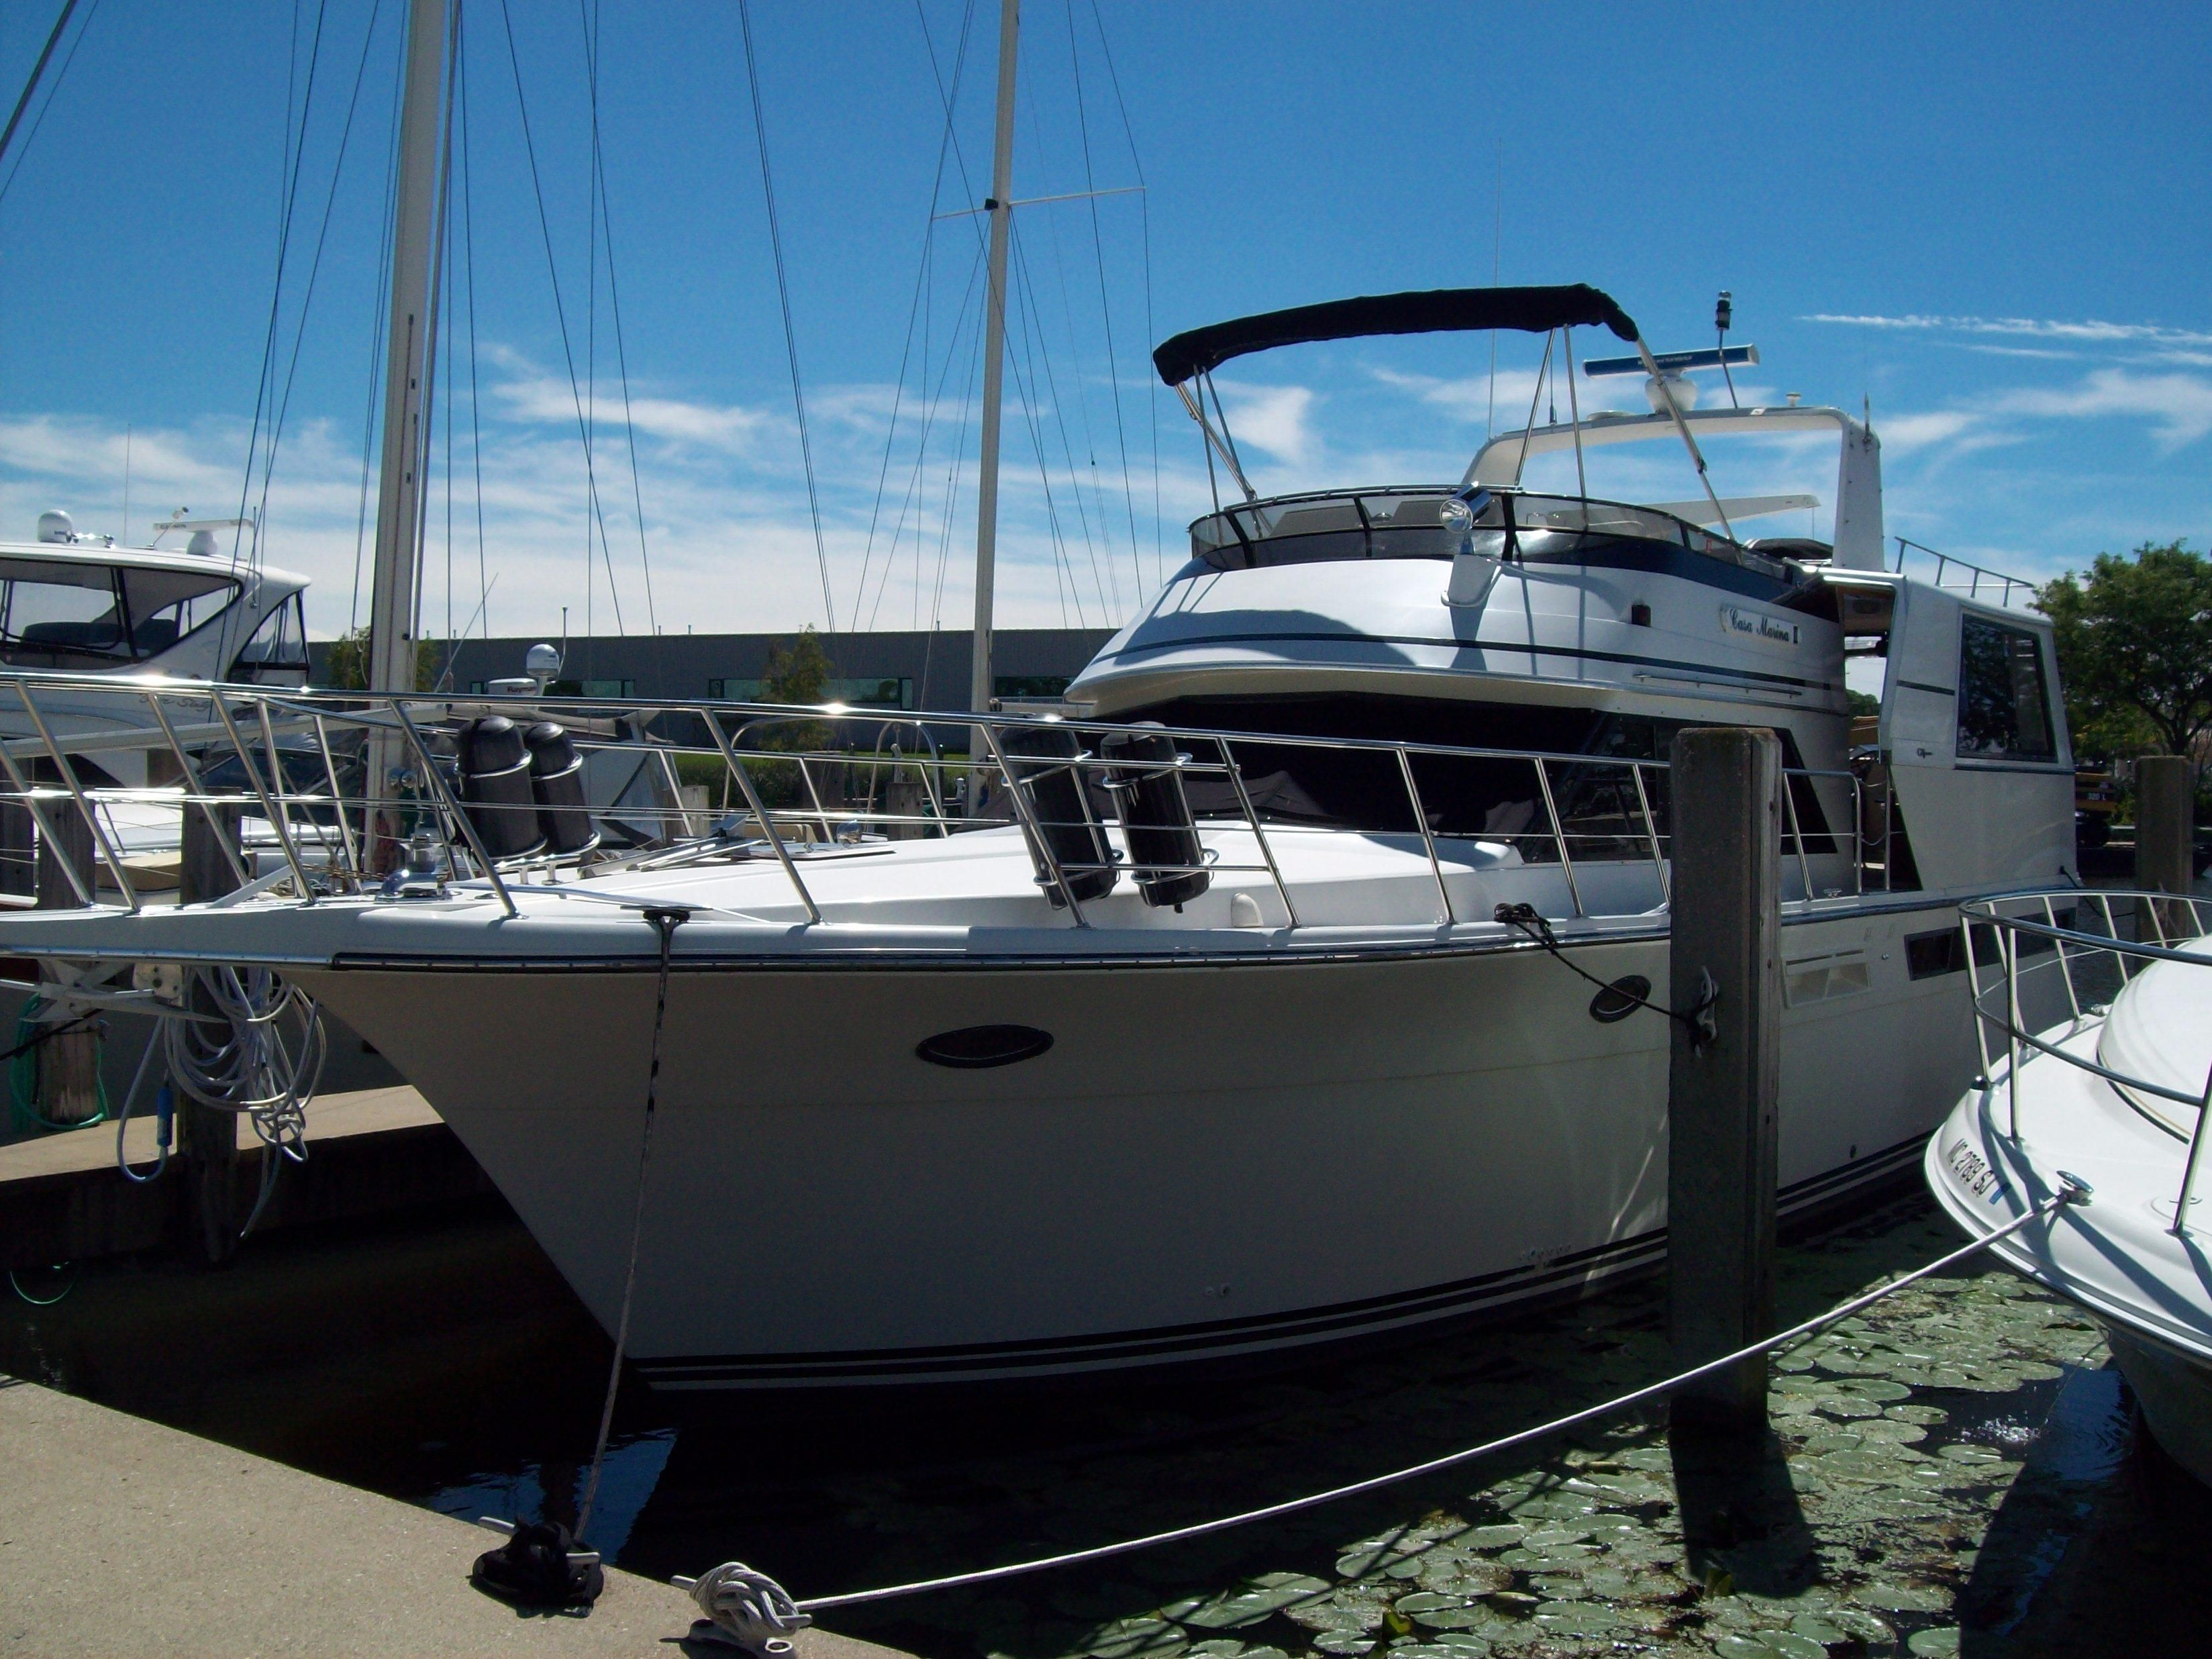 1990 californian 48 motor yacht power boat for sale www for Ocean yachts 48 motor yacht for sale